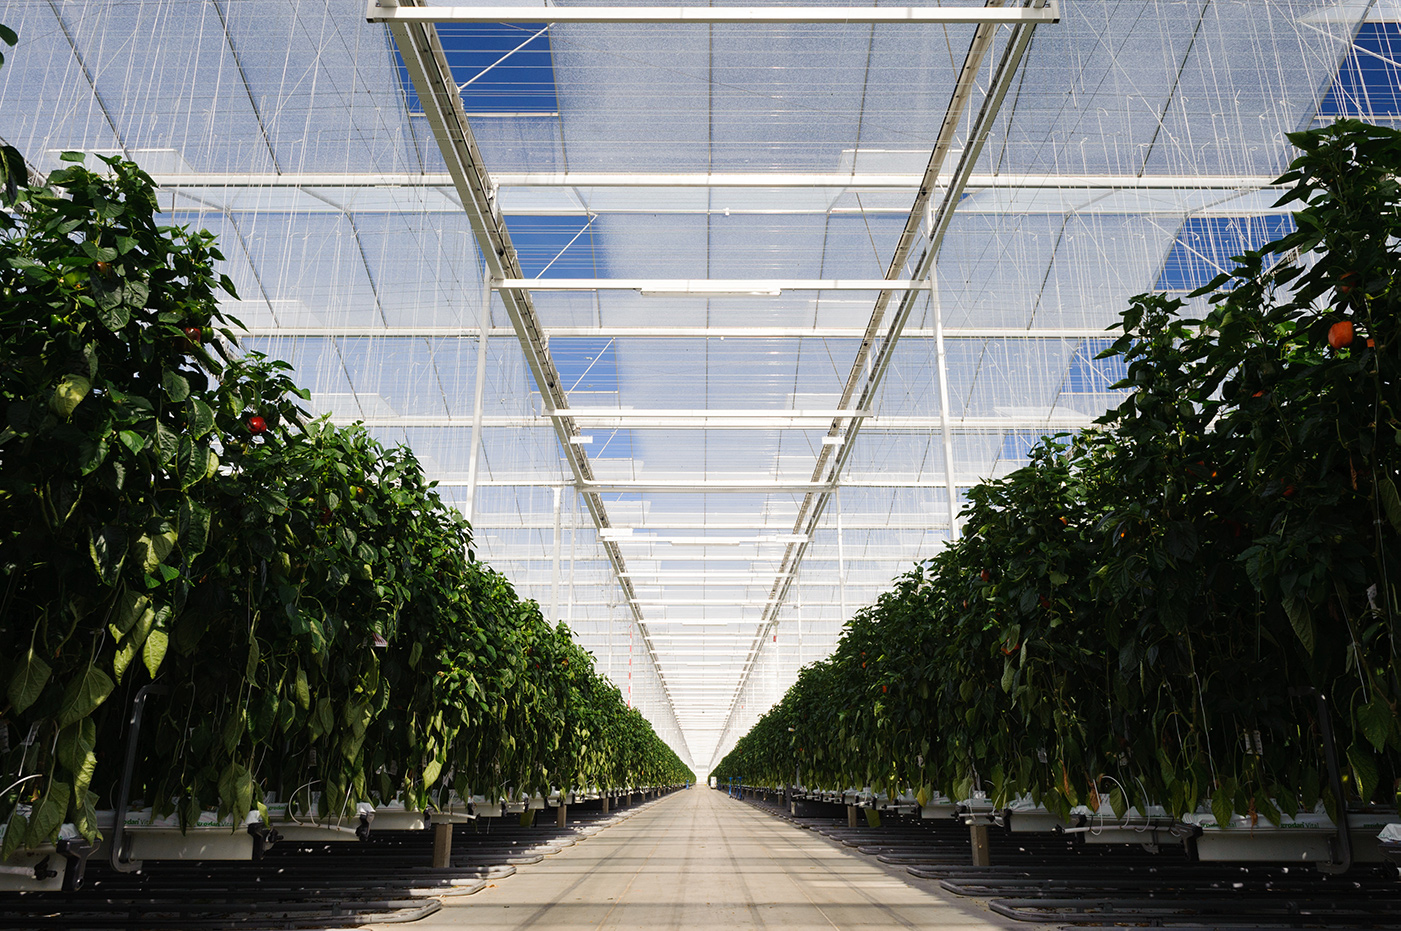 Interior of a Glass Greenhouse showing blue sky and rows of Tomato Plants